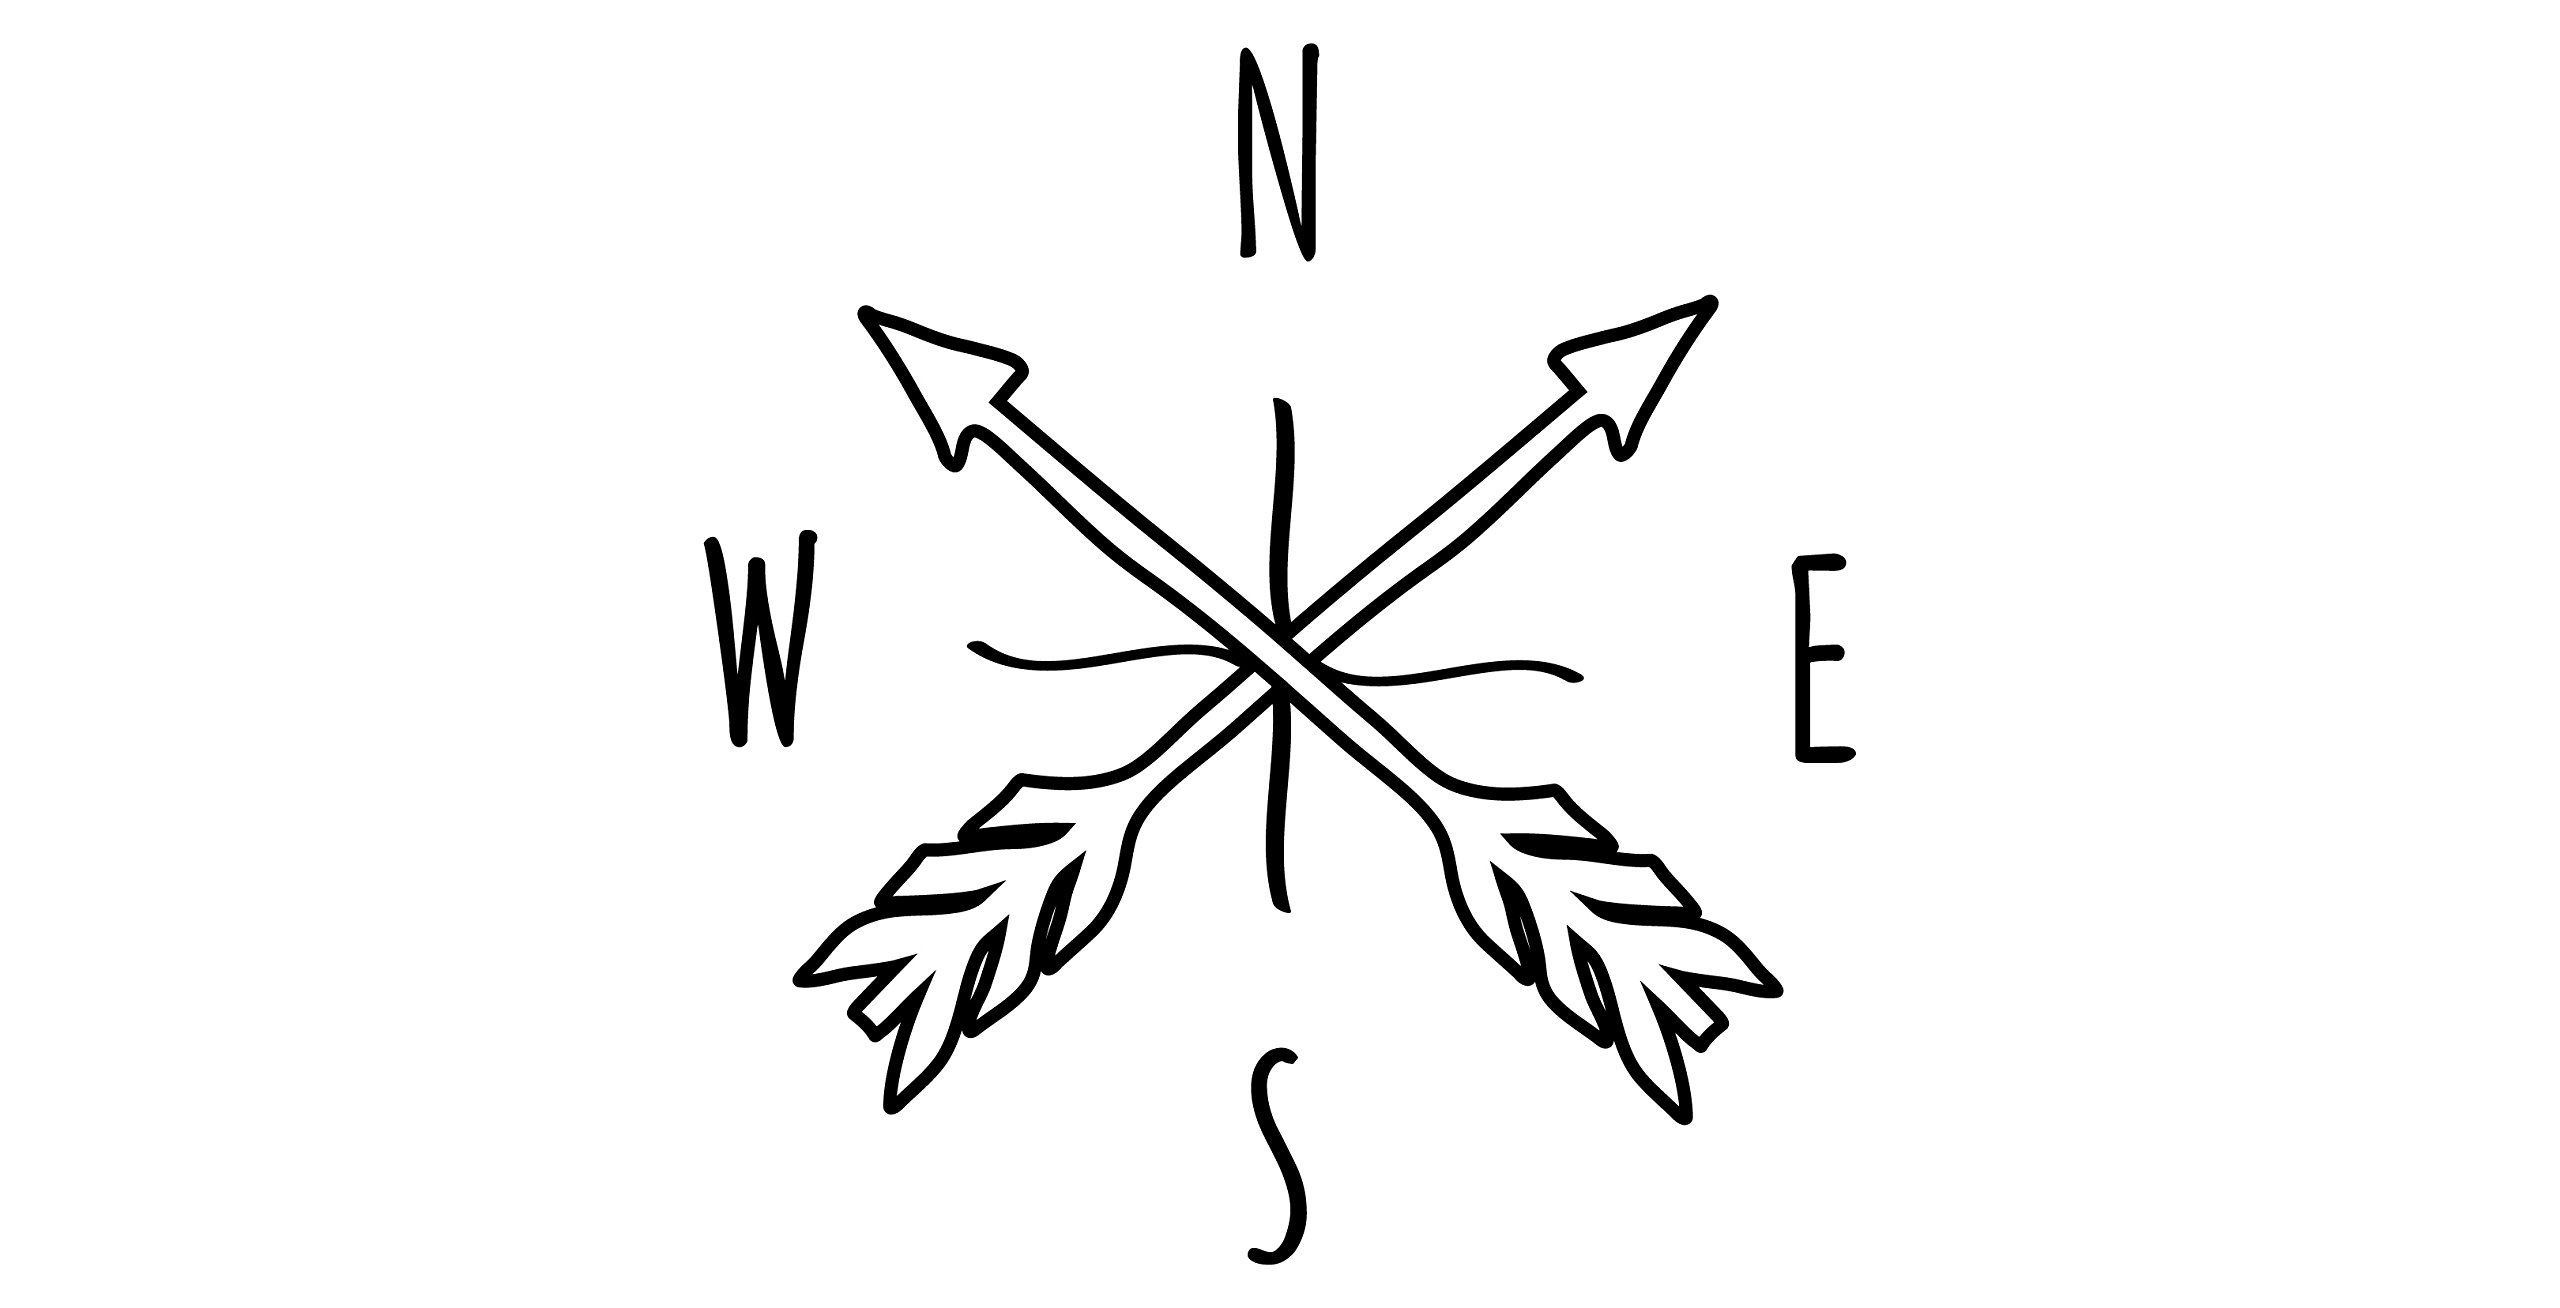 Black Doodle Arrow Compass - Small - Vinyl Wall Art Decal for Homes, Offices, Kids Rooms, Nurseries, Schools, High Schools, Colleges, Universities, Interior Designers, Architects, Remodelers